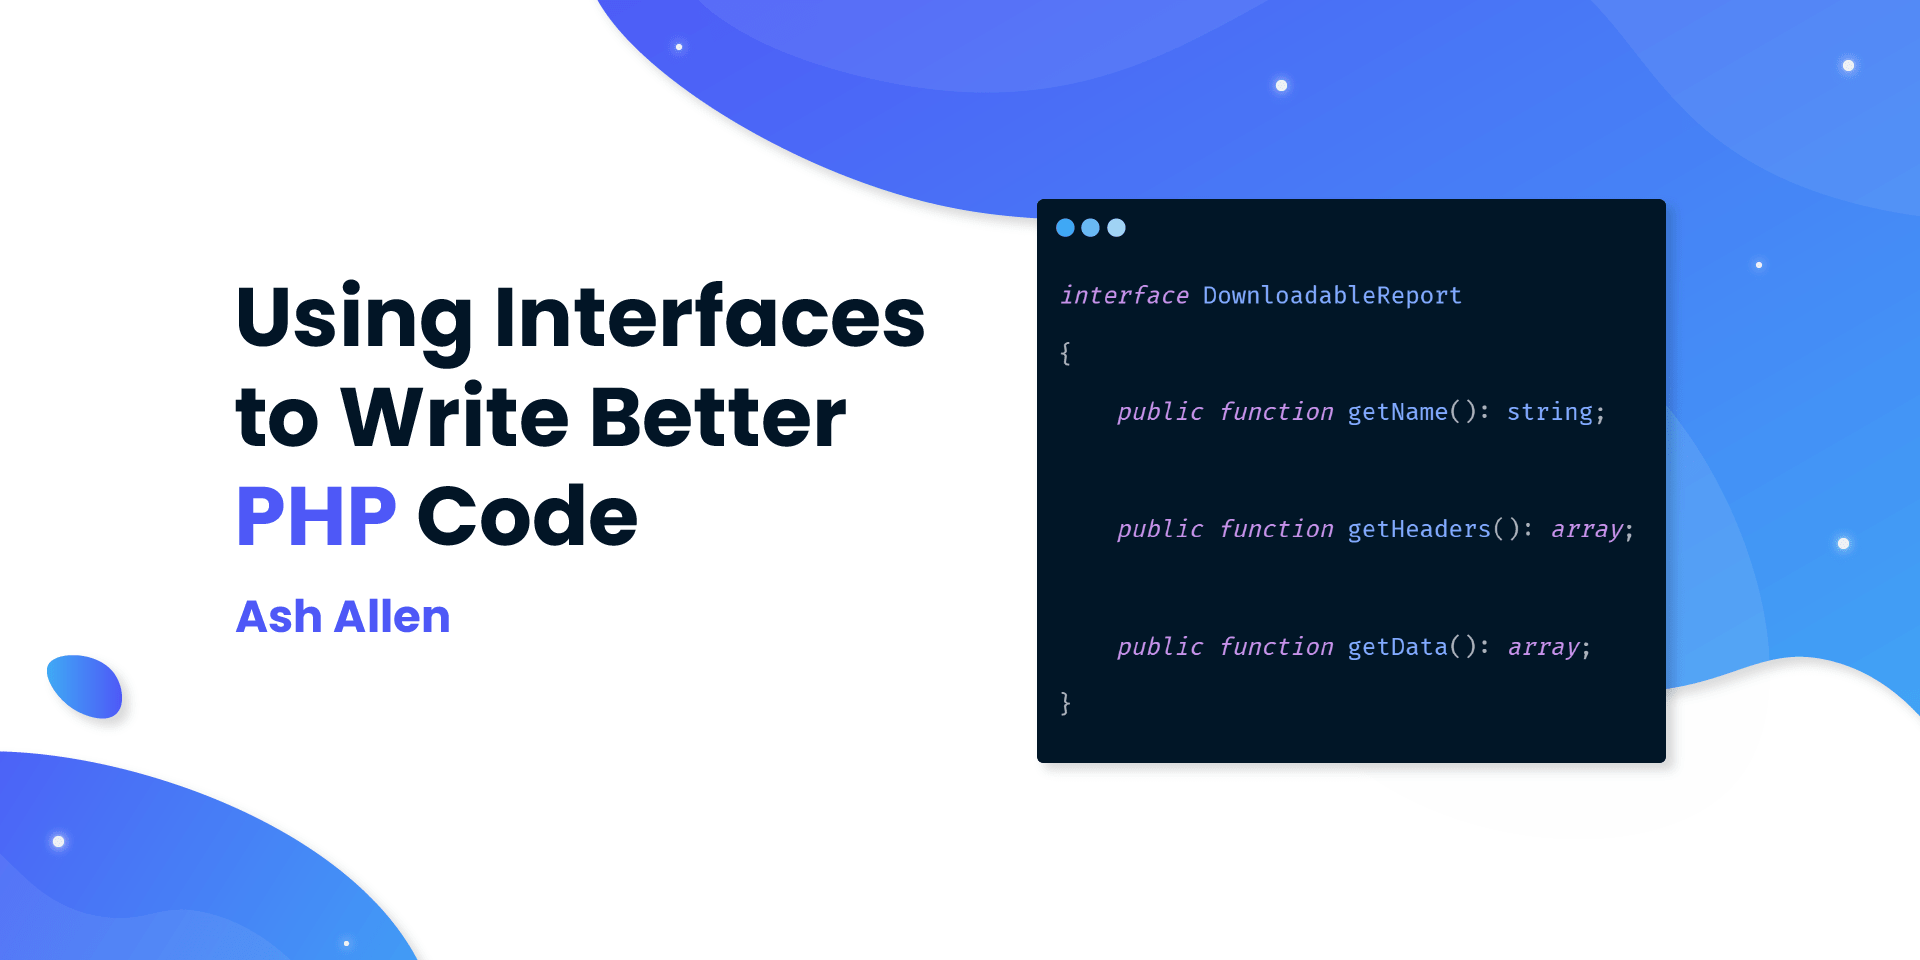 Learn how to use interfaces in your PHP code to improve extendability, readability, and testability. This article contains examples of how to use the interfaces in a real-world scenario.